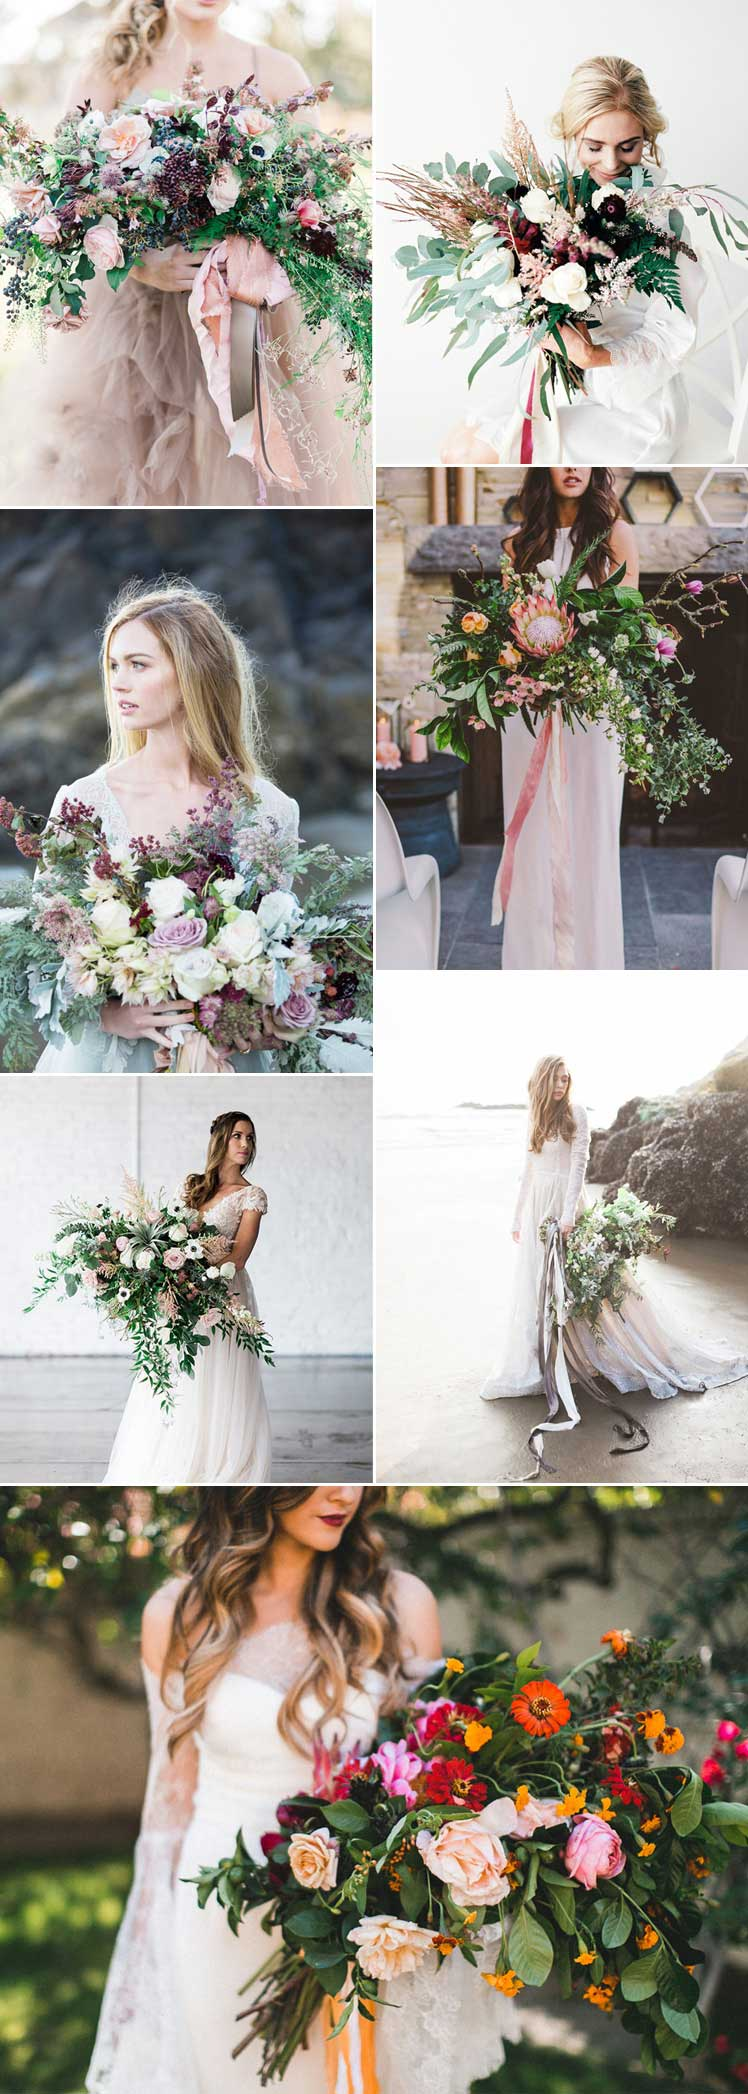 Statement oversized bridal bouquets